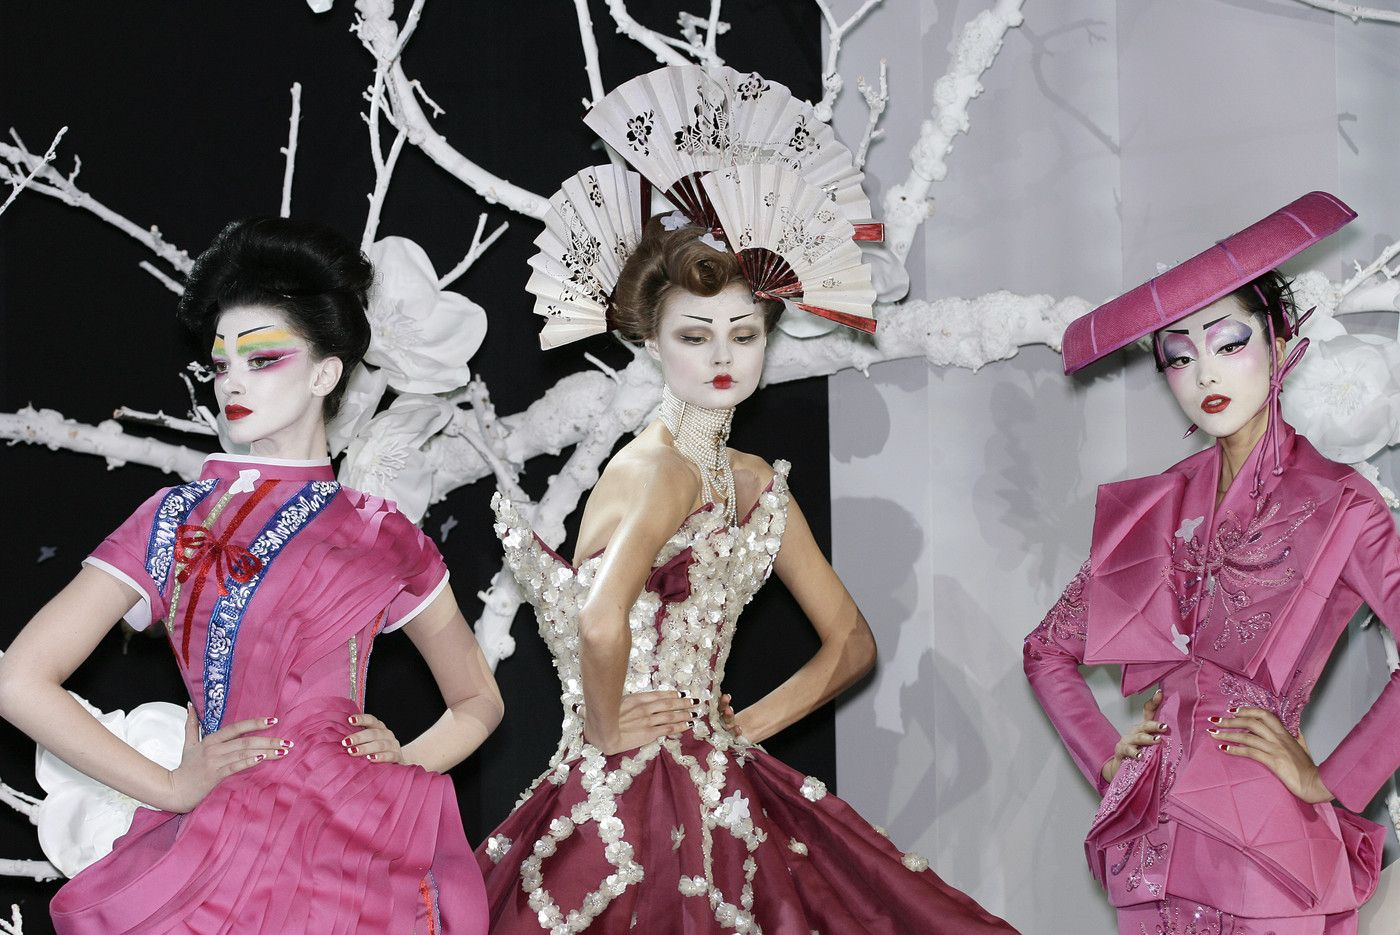 187 photos of Christian Dior at Couture Spring 2007.